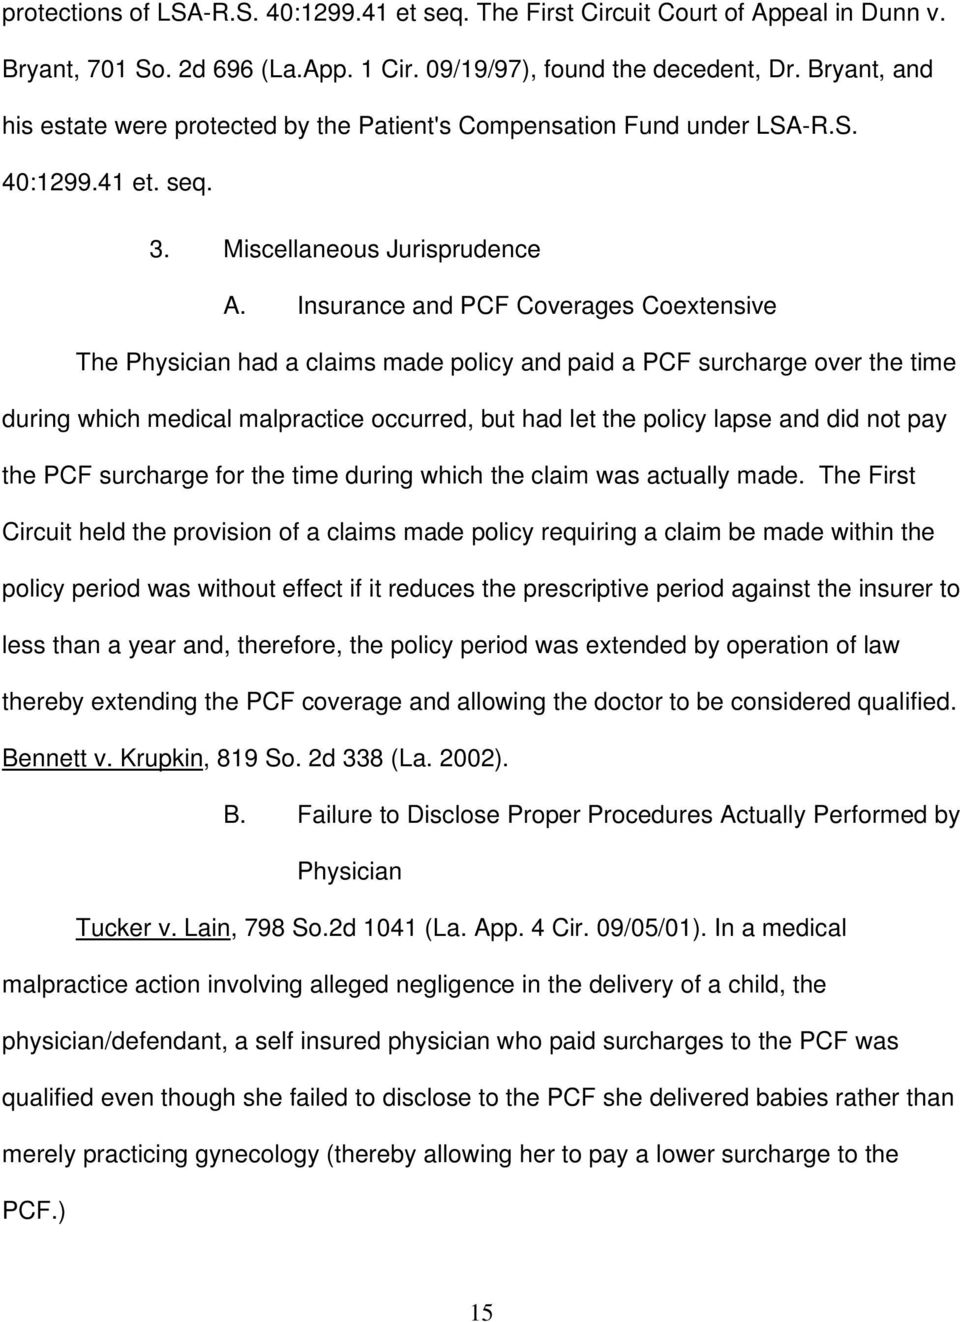 Insurance and PCF Coverages Coextensive The Physician had a claims made policy and paid a PCF surcharge over the time during which medical malpractice occurred, but had let the policy lapse and did